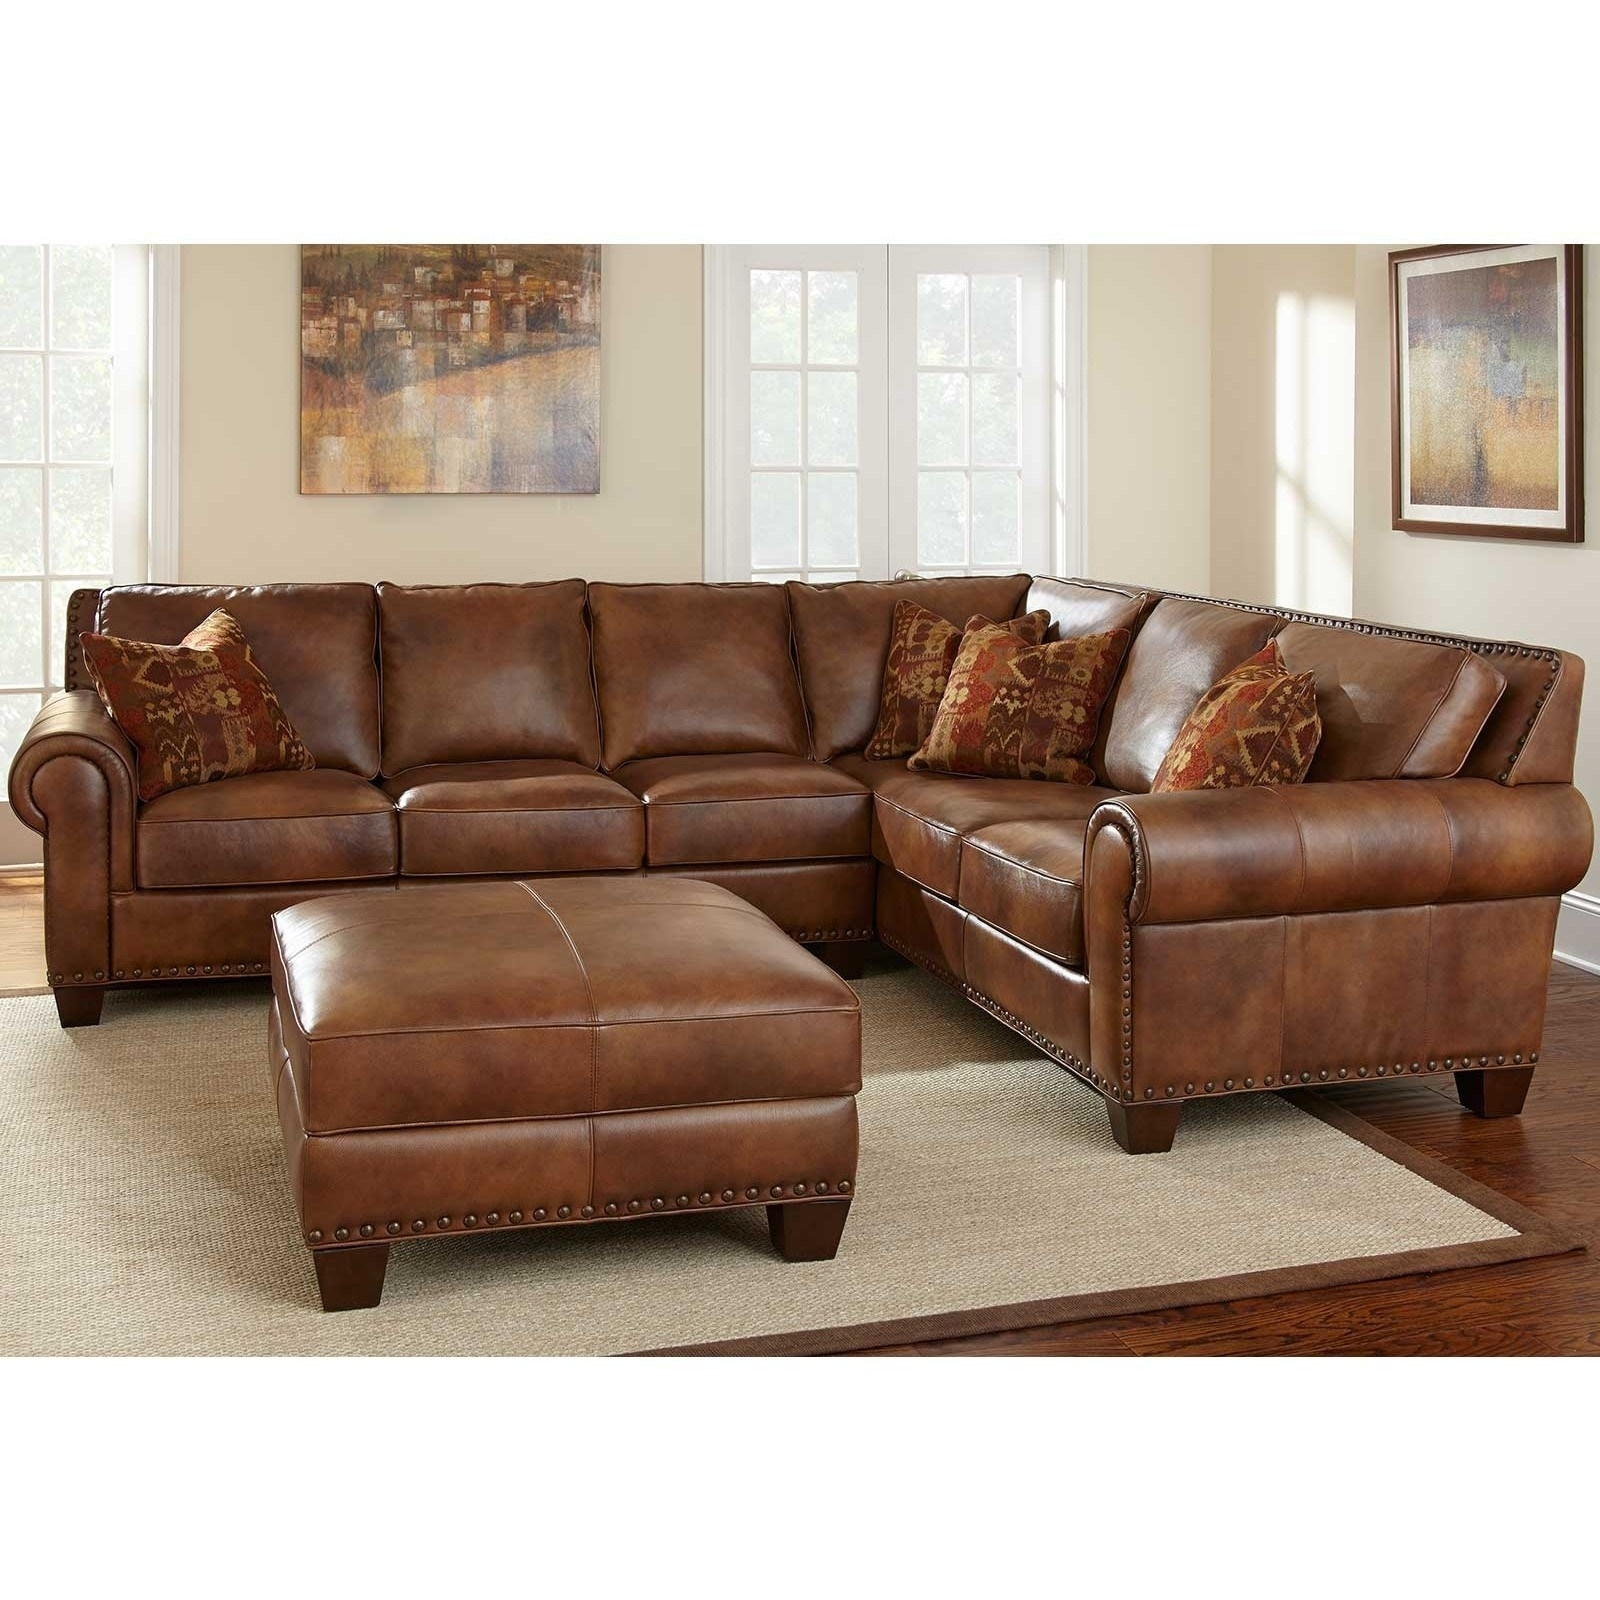 Inspirational Sectional Sofa Sales 24 On Sectional Sofas North Pertaining To North Carolina Sectional Sofas (View 3 of 10)